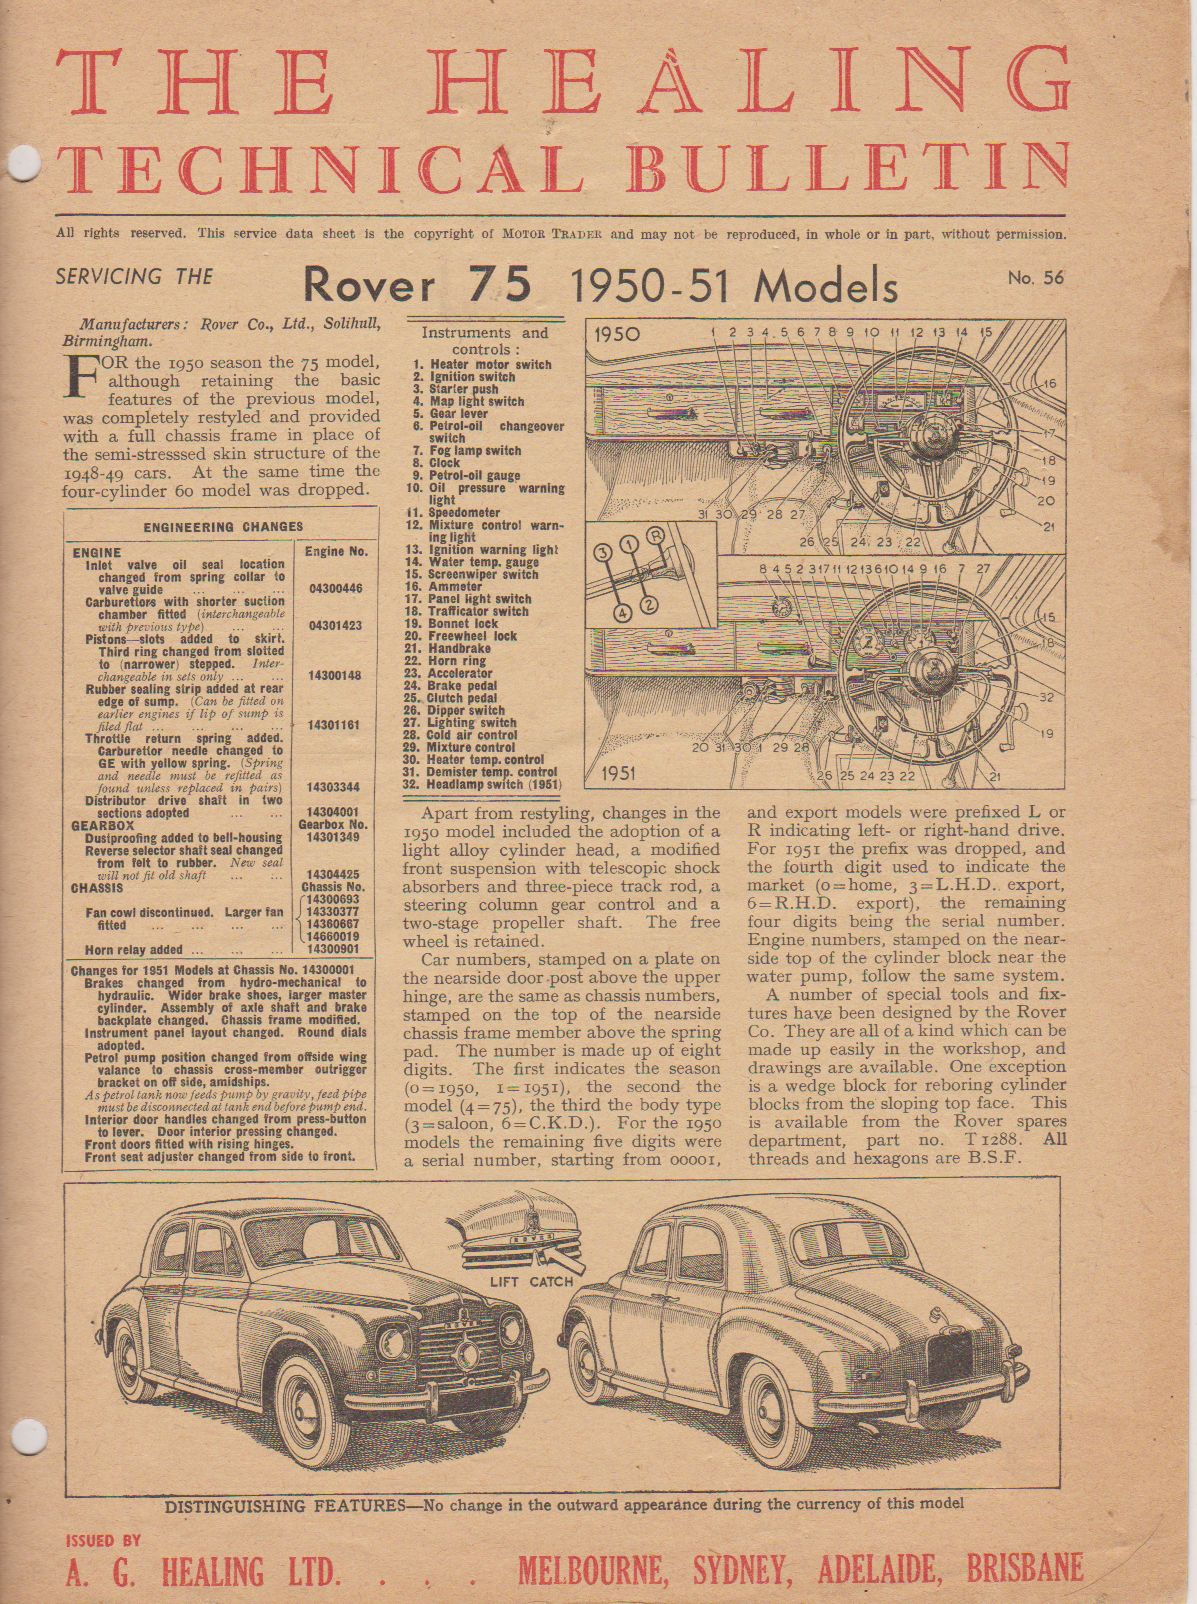 ROVER 75 1950-1 MODELS HEALING TECHNICAL BULLETIN